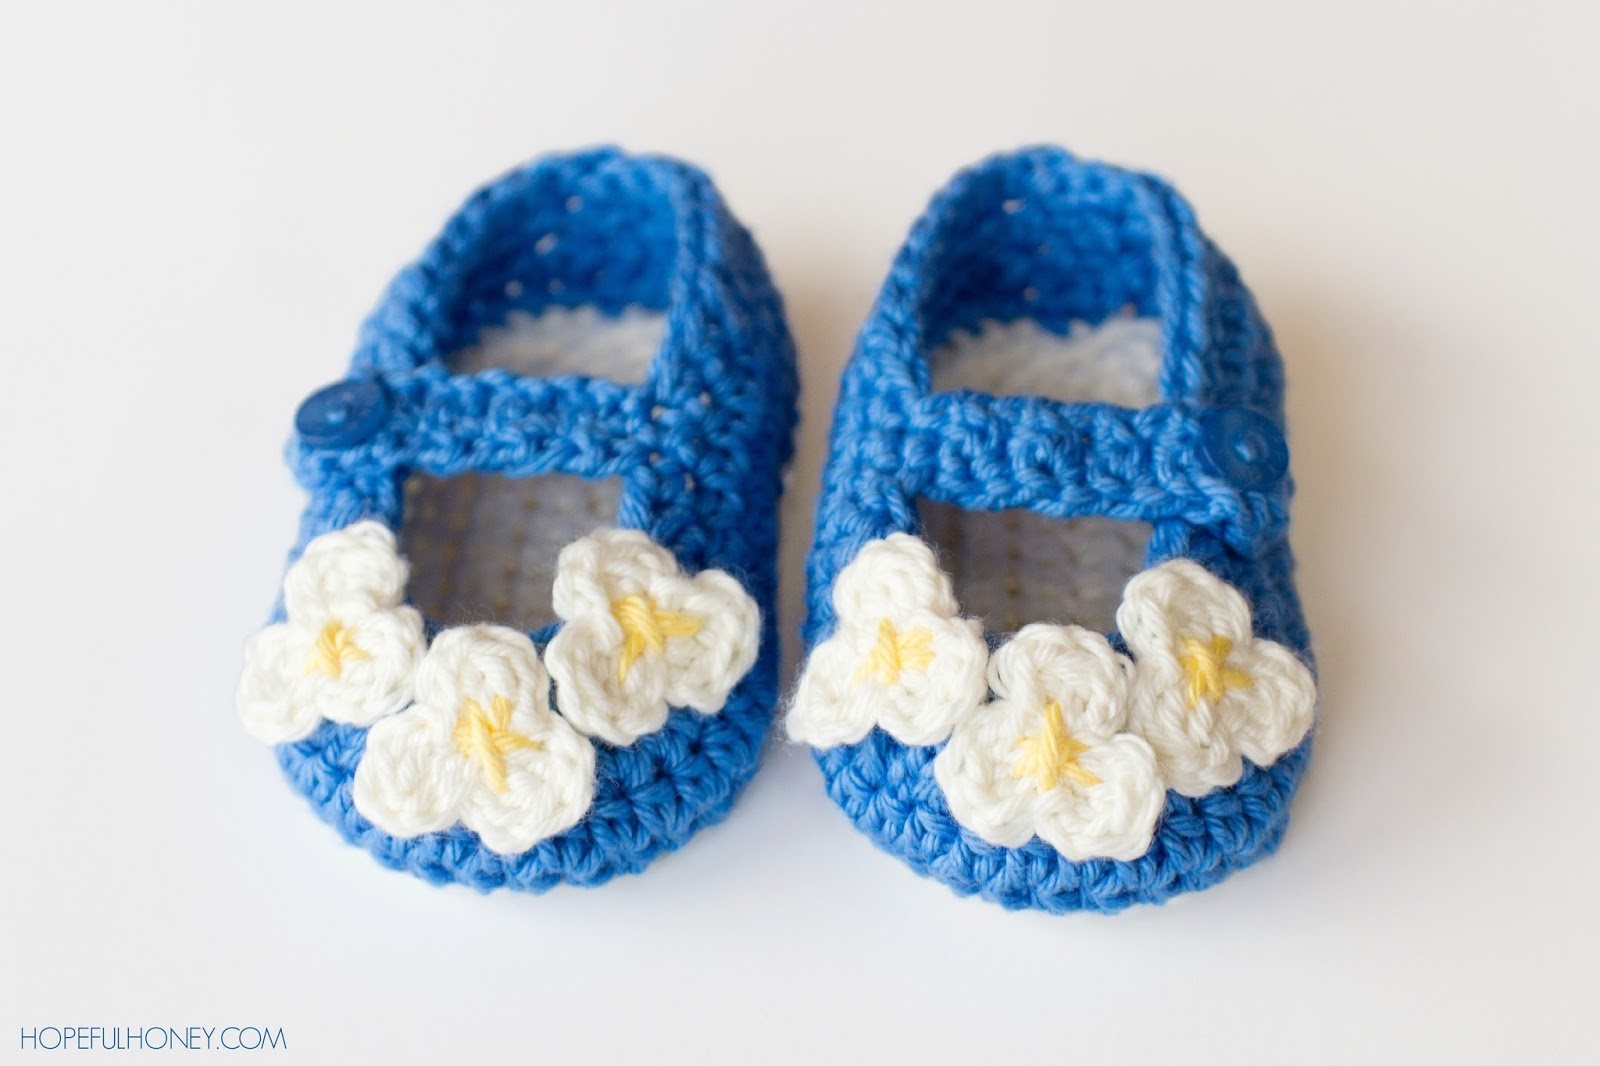 How To Crochet Baby Booties Free Patterns : Hopeful Honey Craft, Crochet, Create: Vintage Mary Jane ...